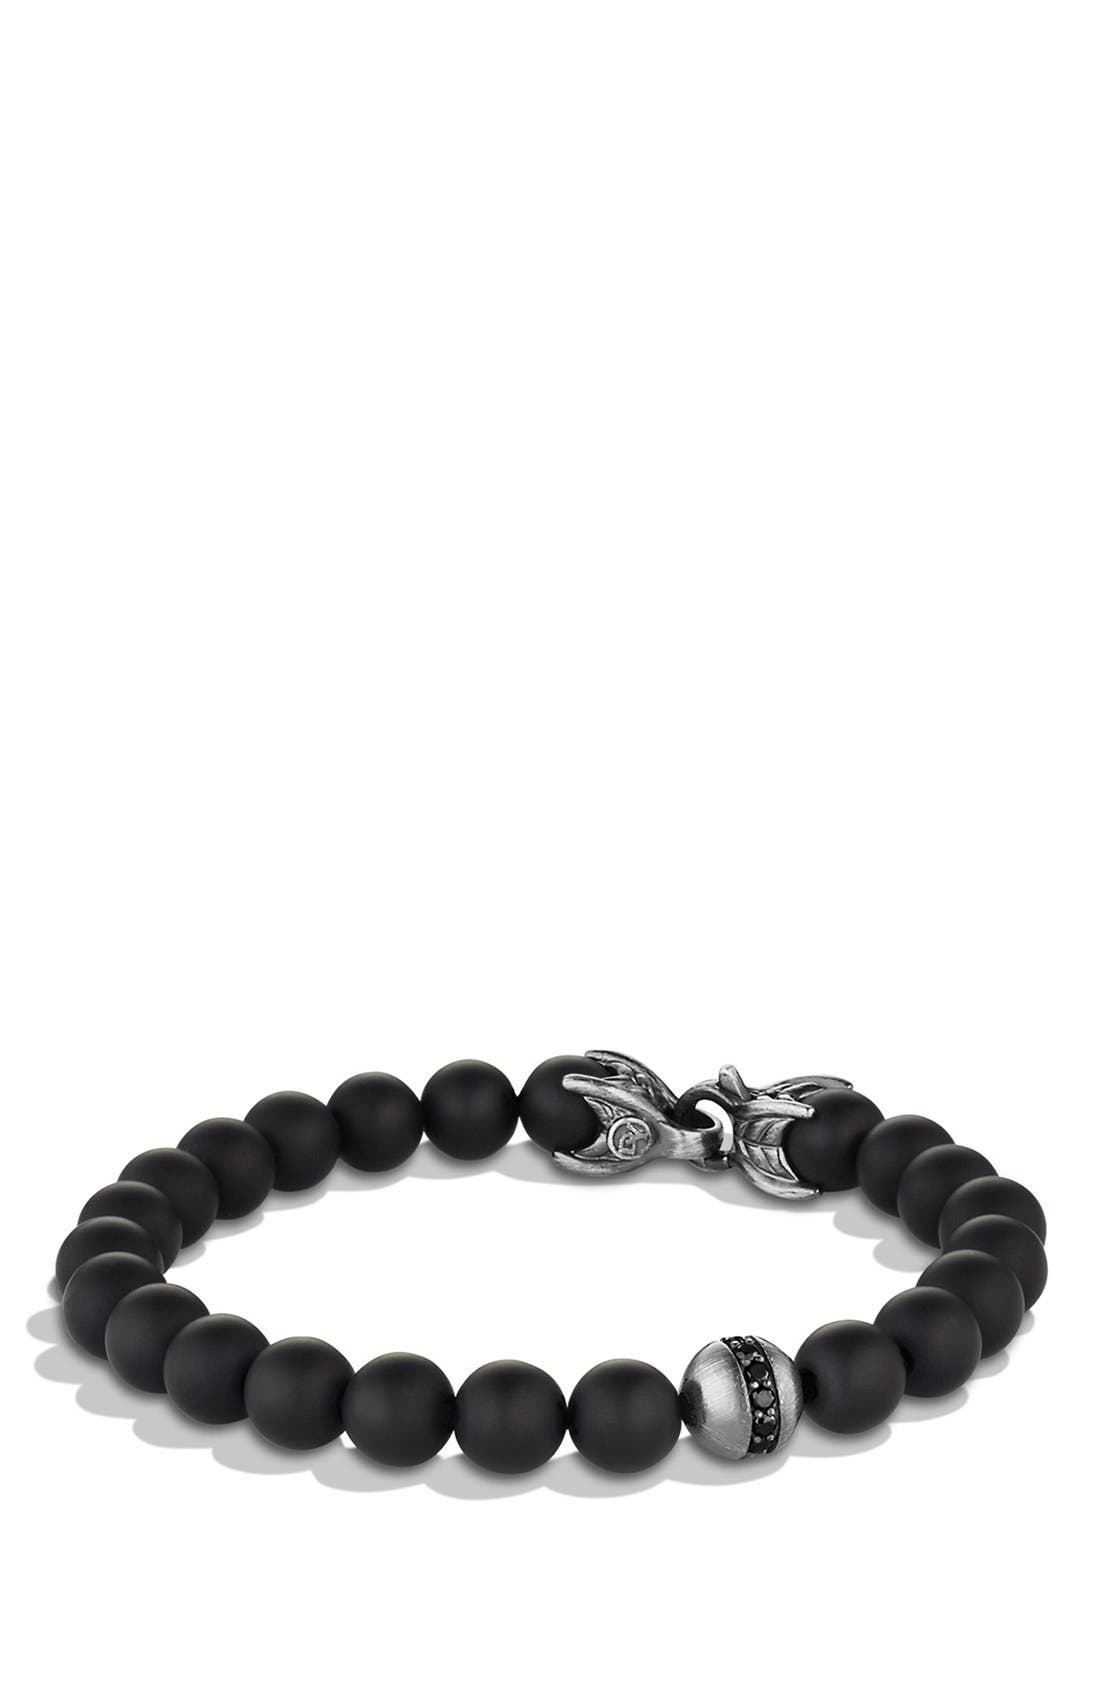 DAVID YURMAN Spiritual Beads Bracelet with Black Onyx and Black Diamonds